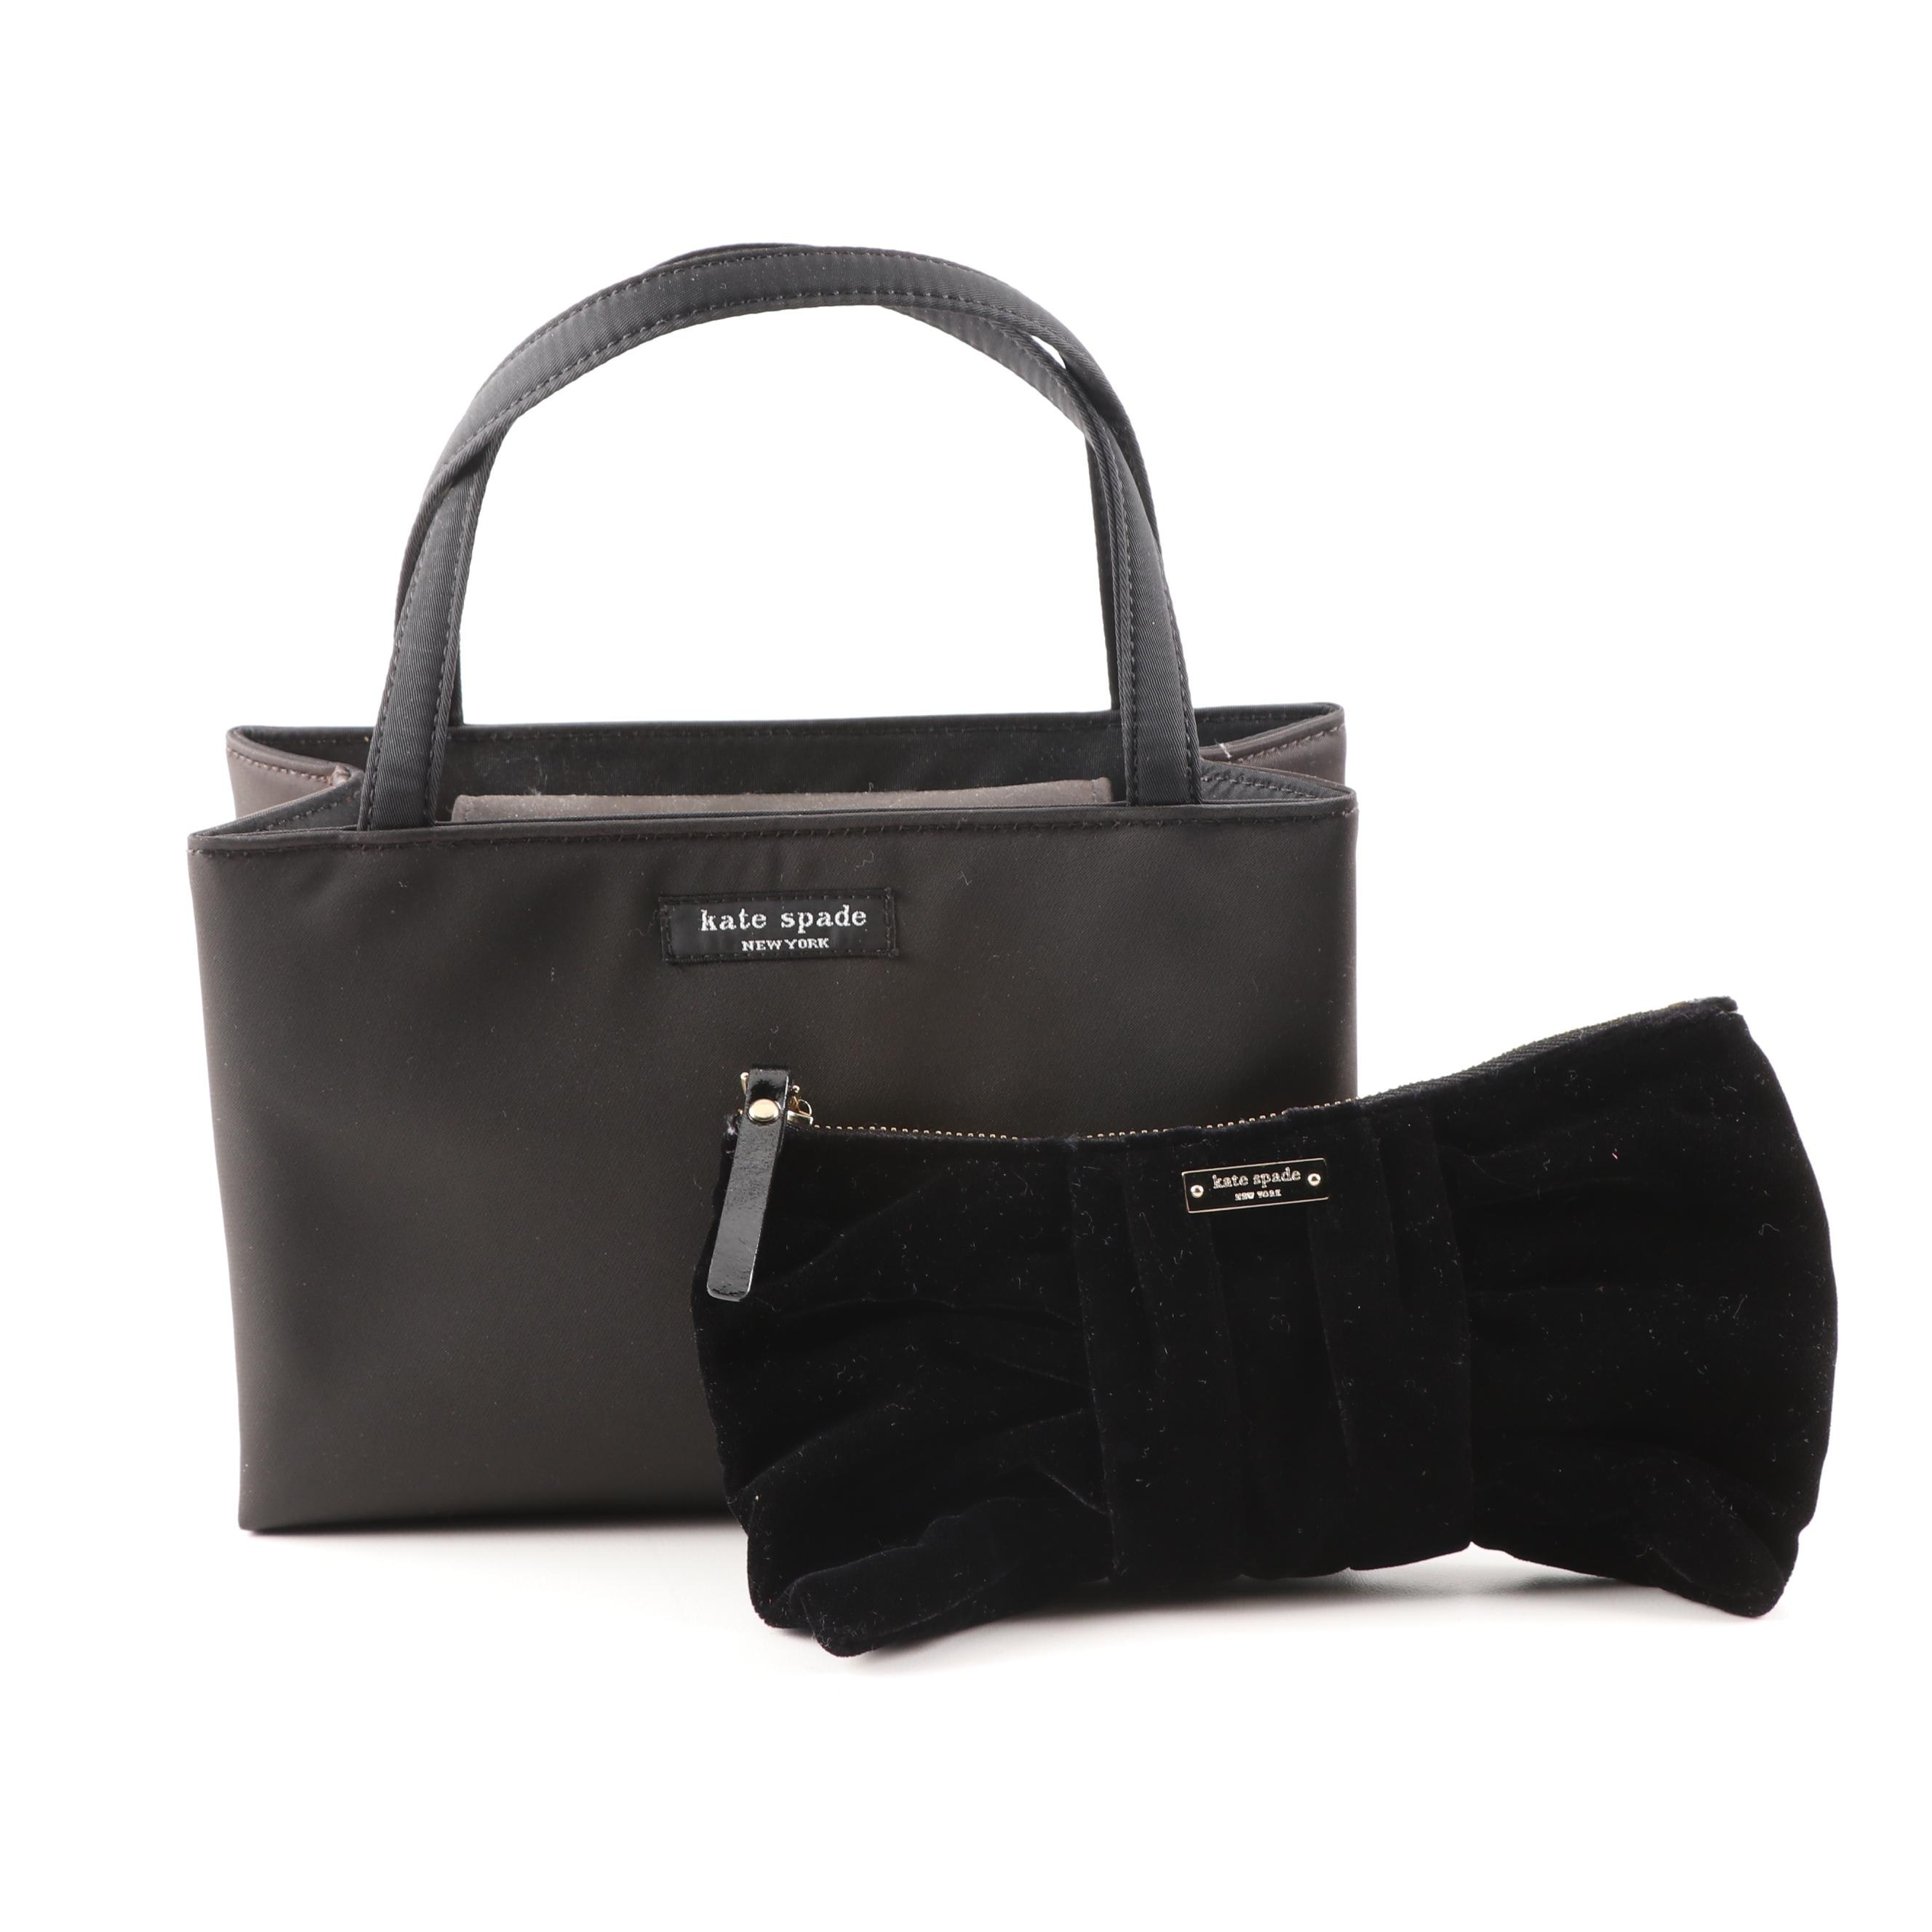 Kate Spade New York Tote and Black Velvet Clutch